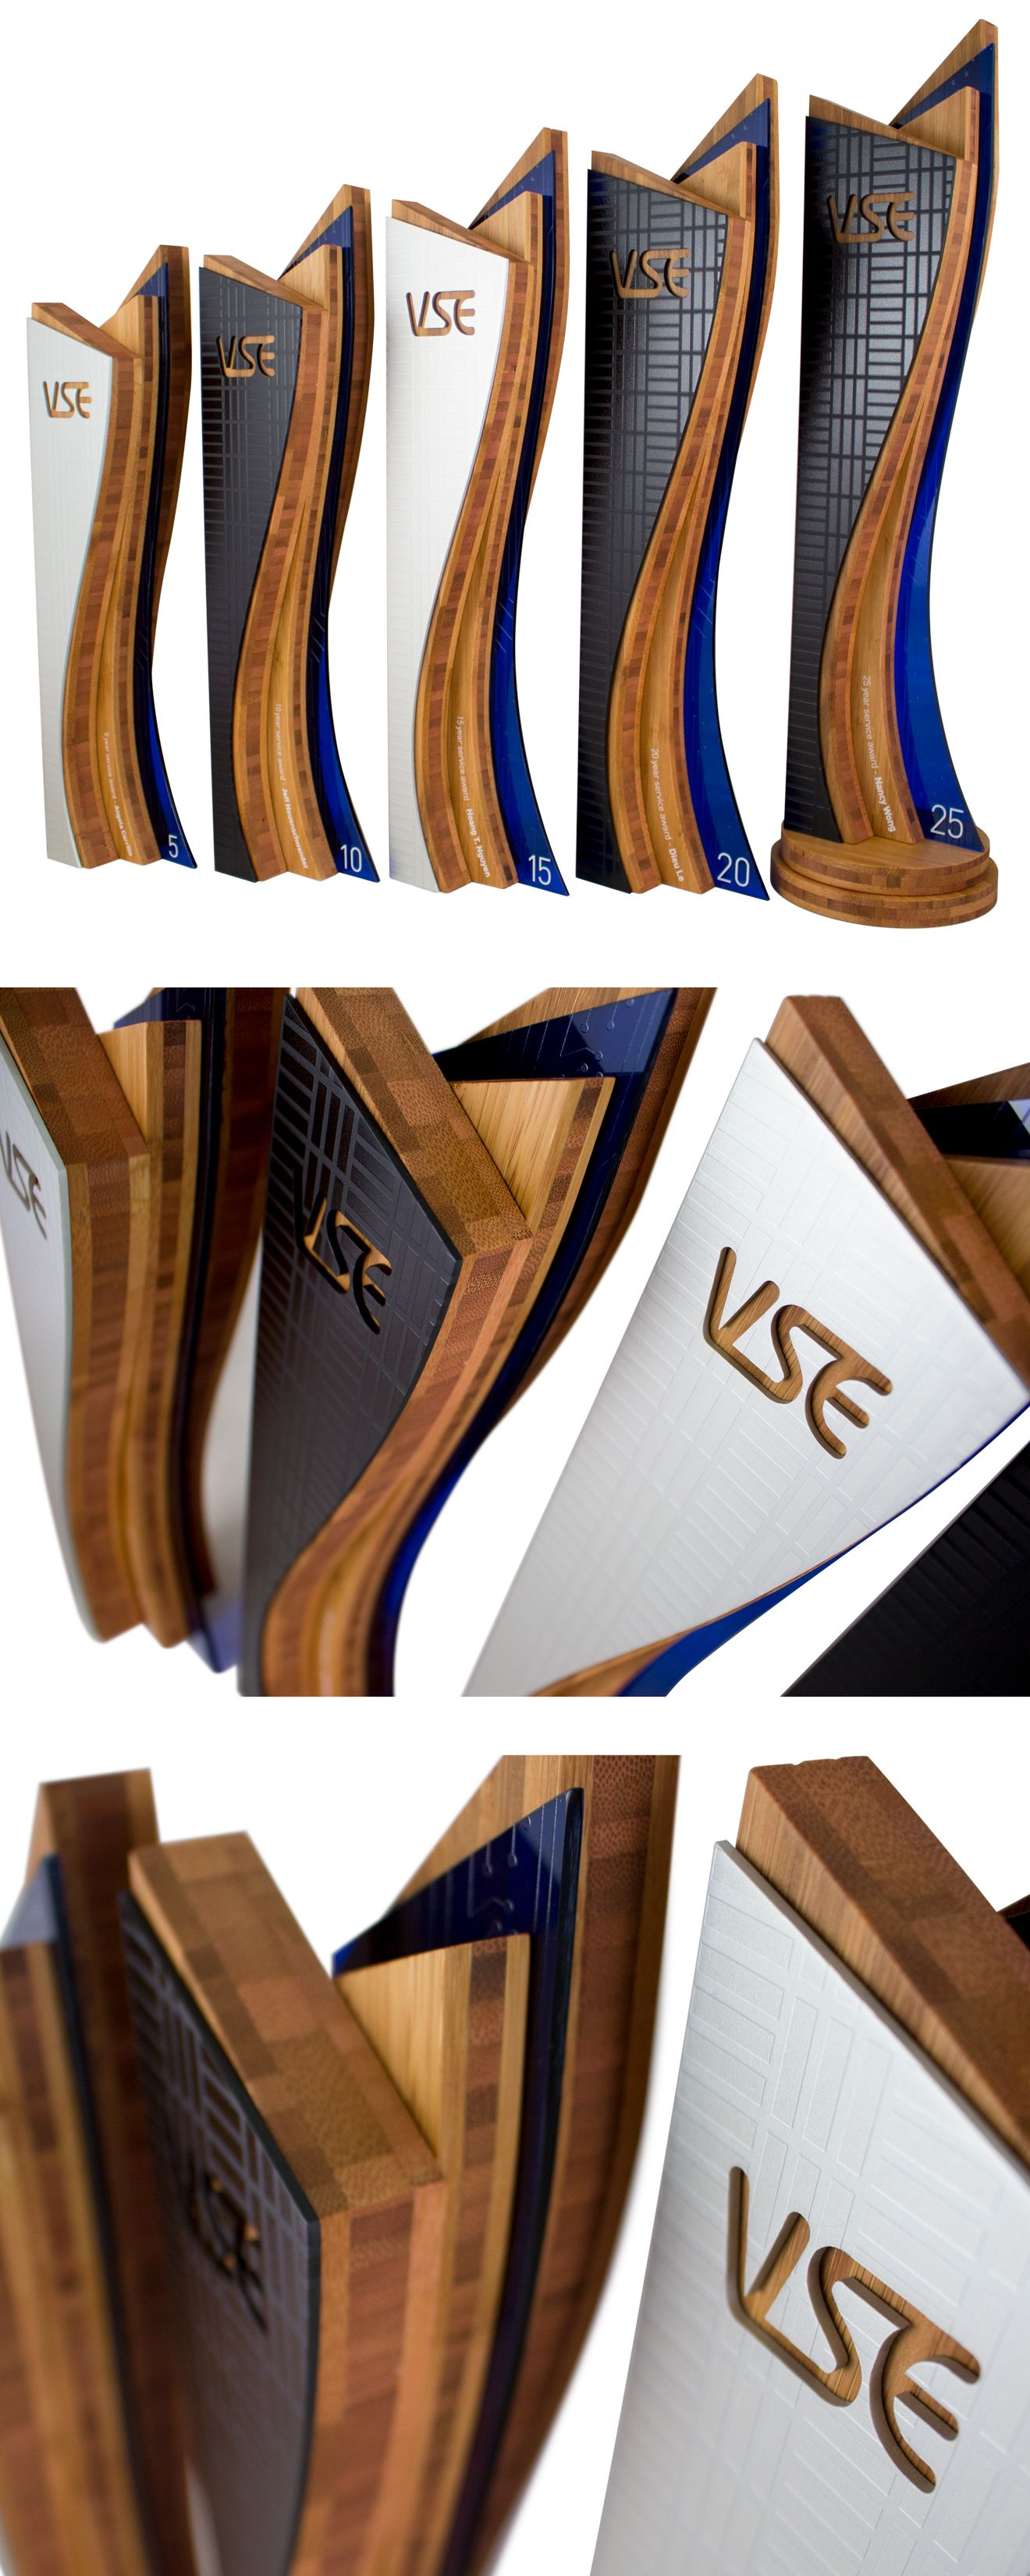 Unity tall modern trophy creative design beautiful materials not glass - We Custom Designed And Handcrafted These Long Service Awards For Our Client At Vse In San